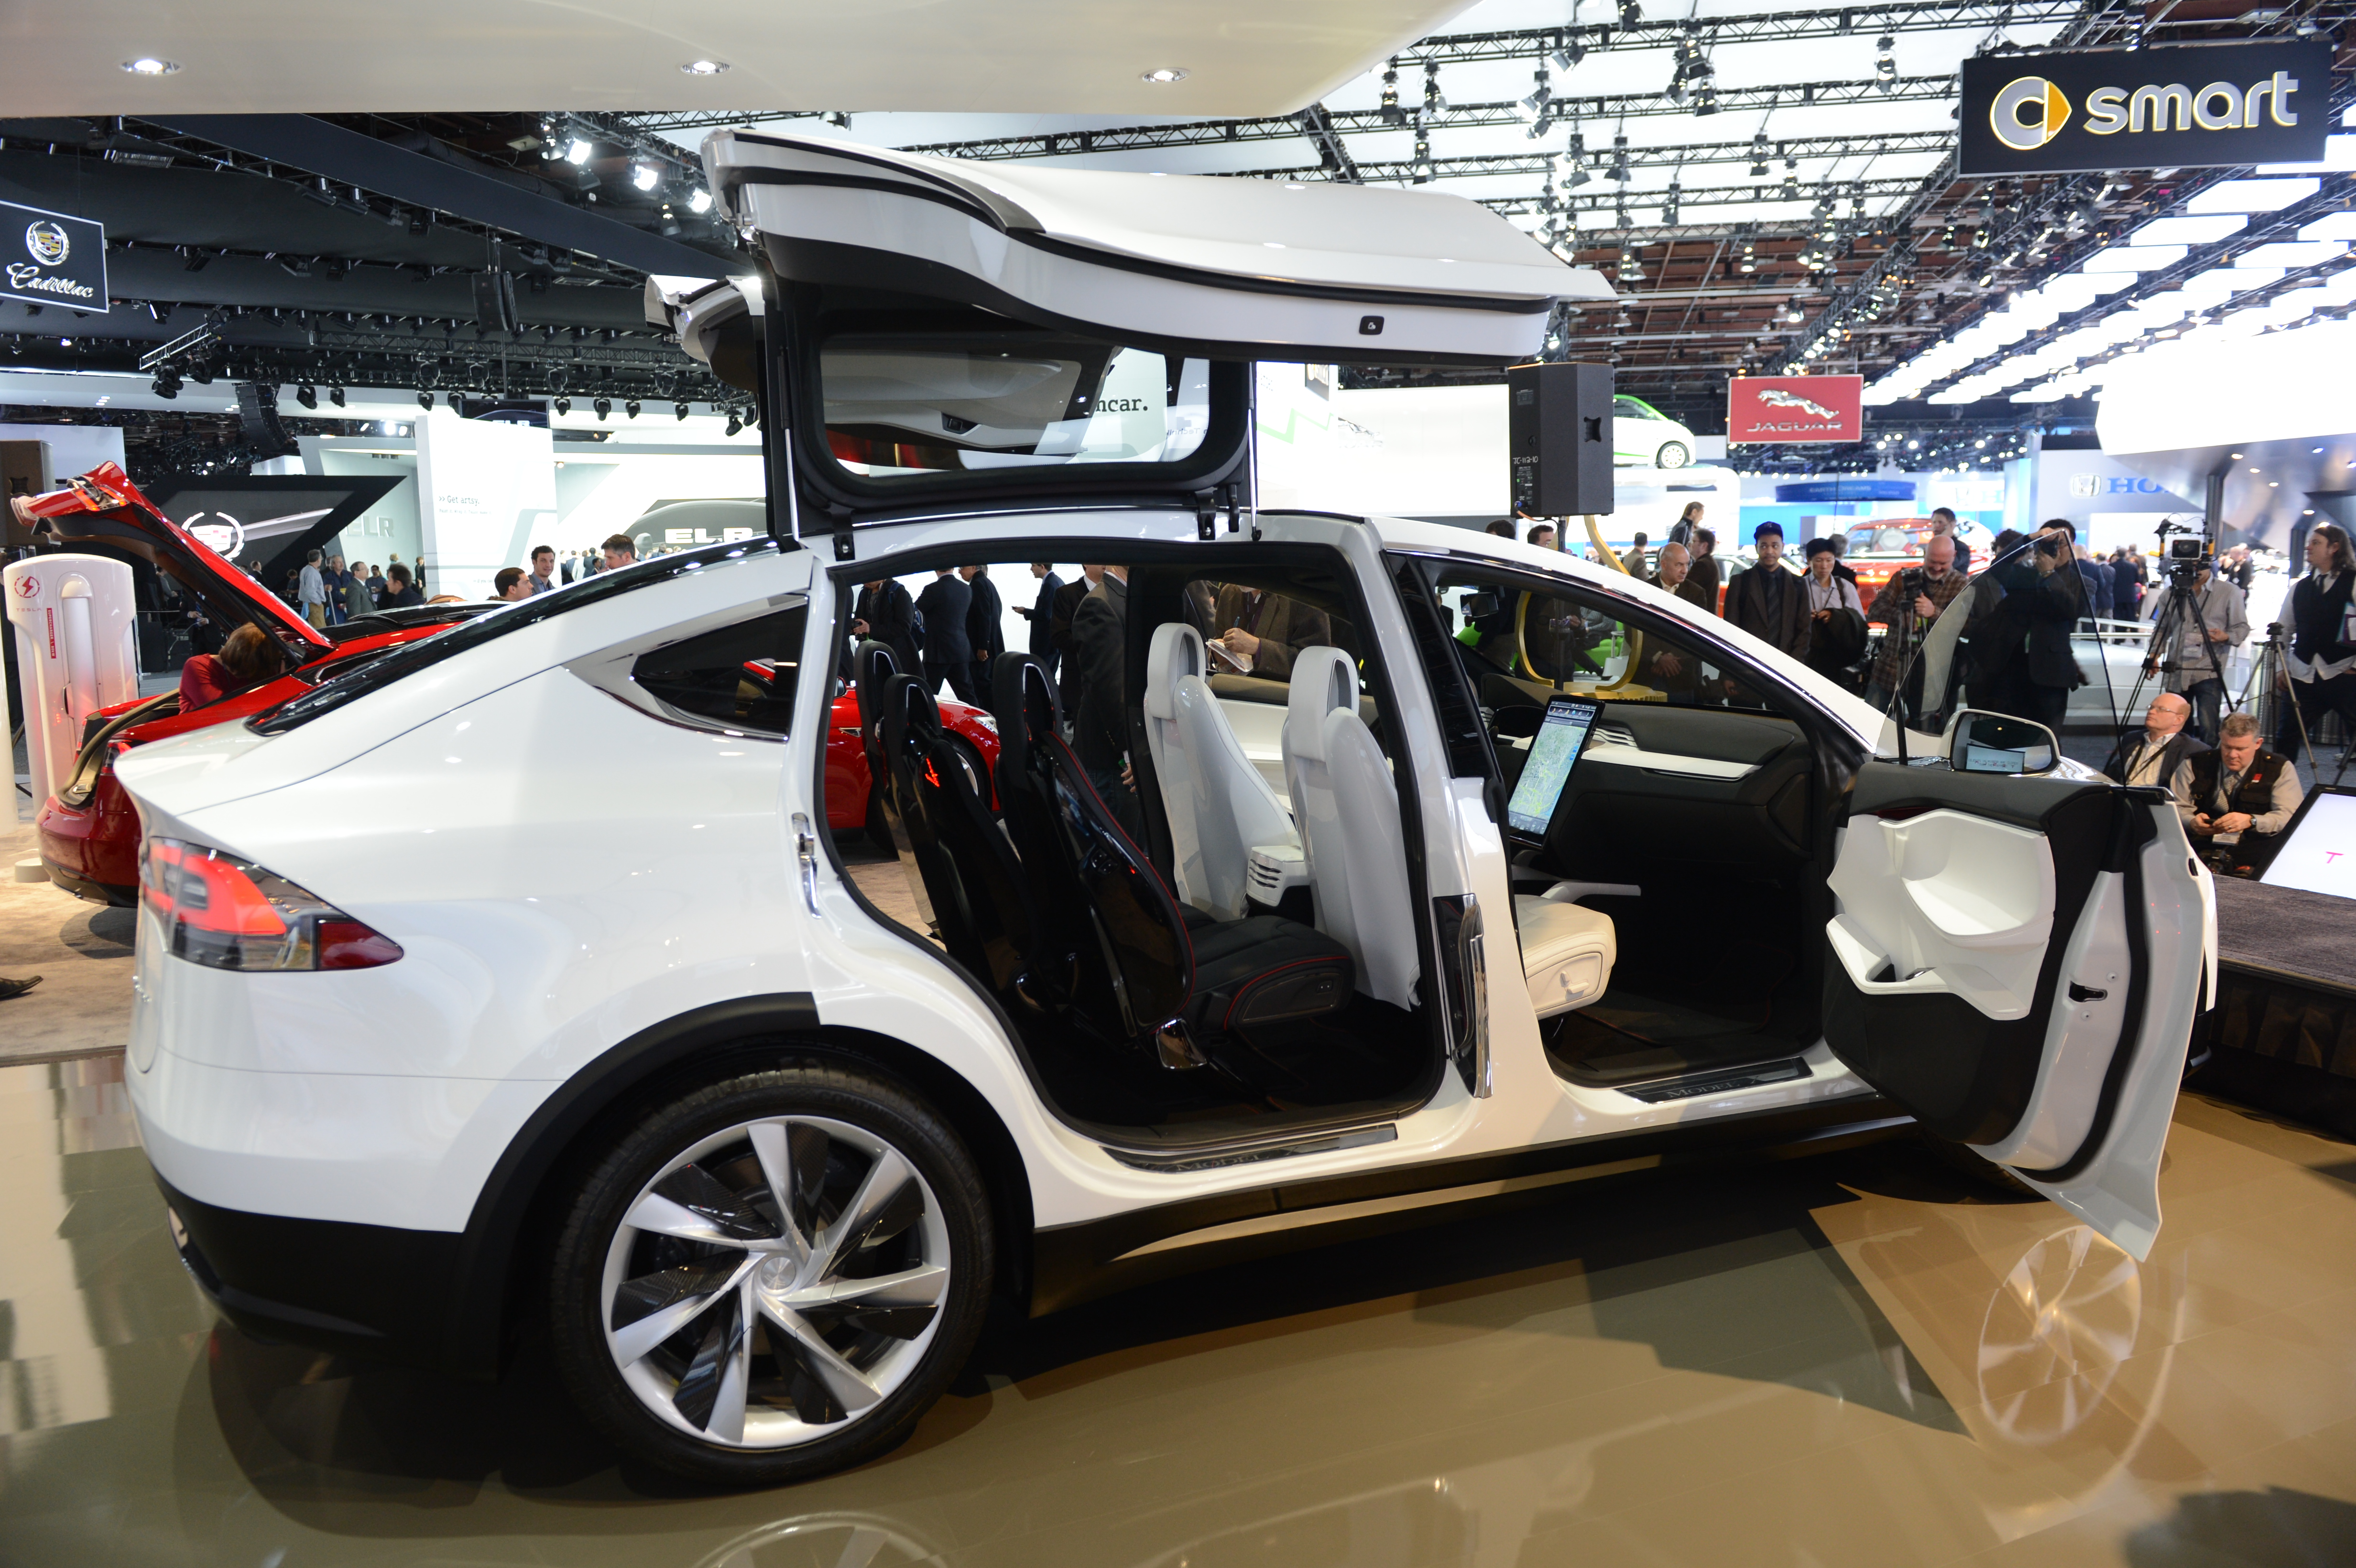 The Tesla Model X is introduced at the 2013 North American International Auto Show .